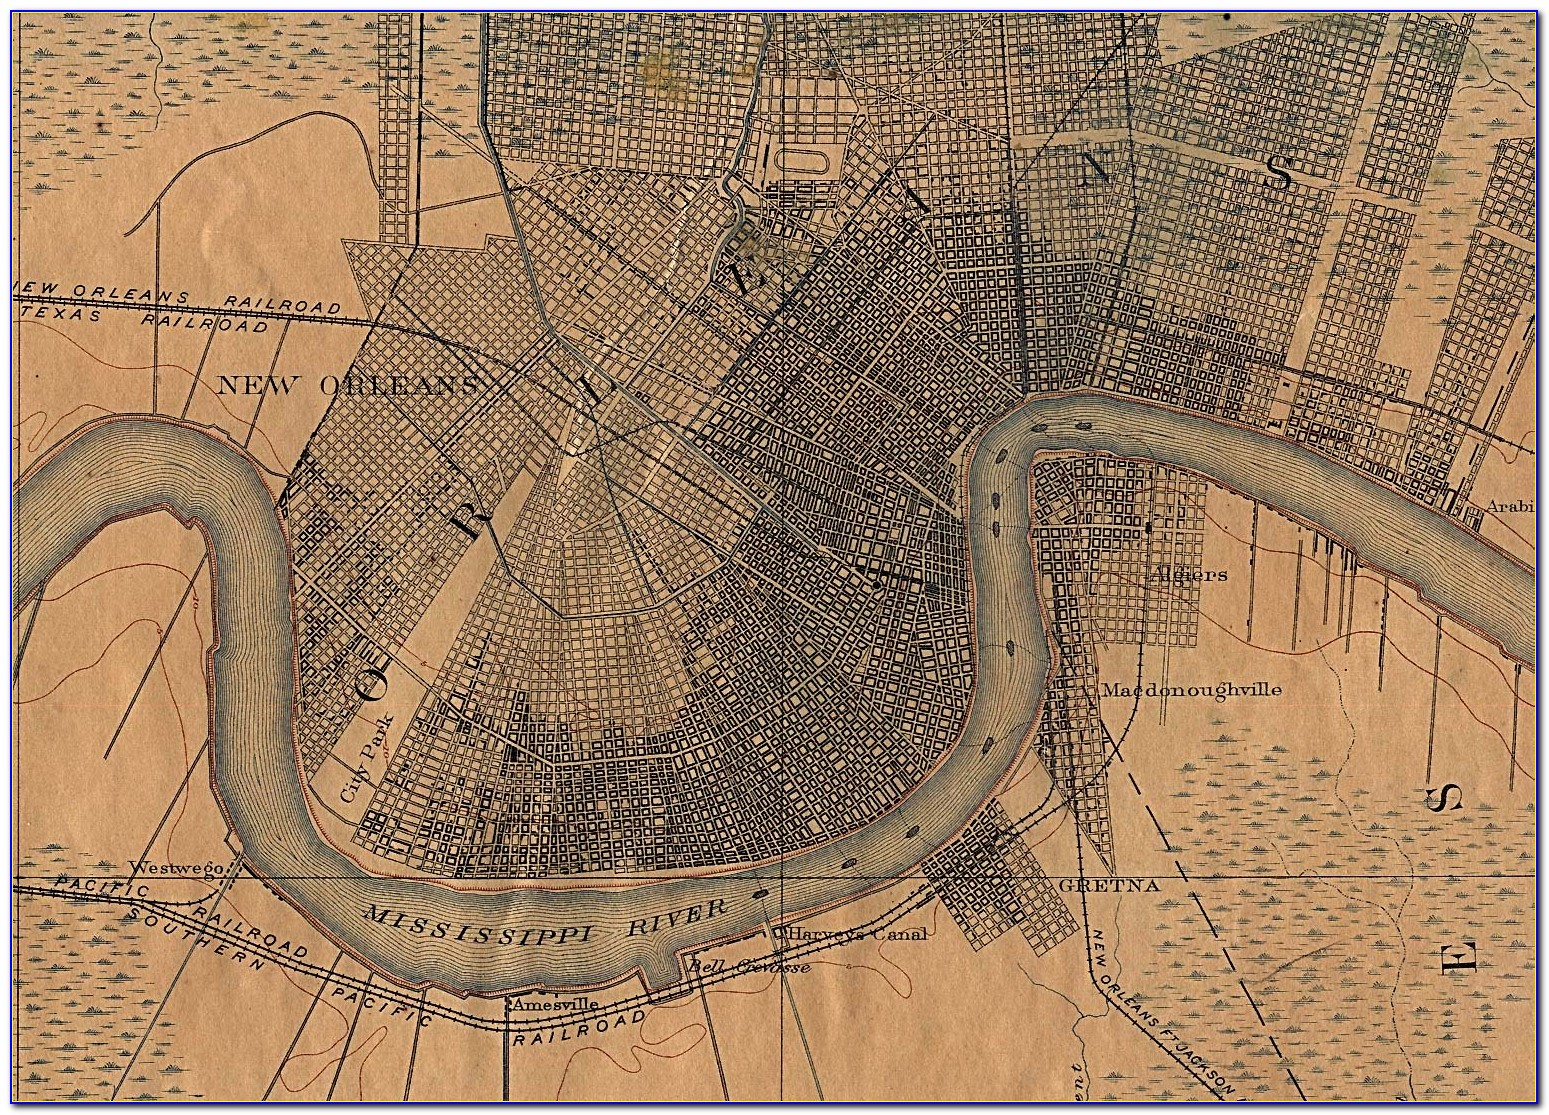 Old Street Maps Of New Orleans